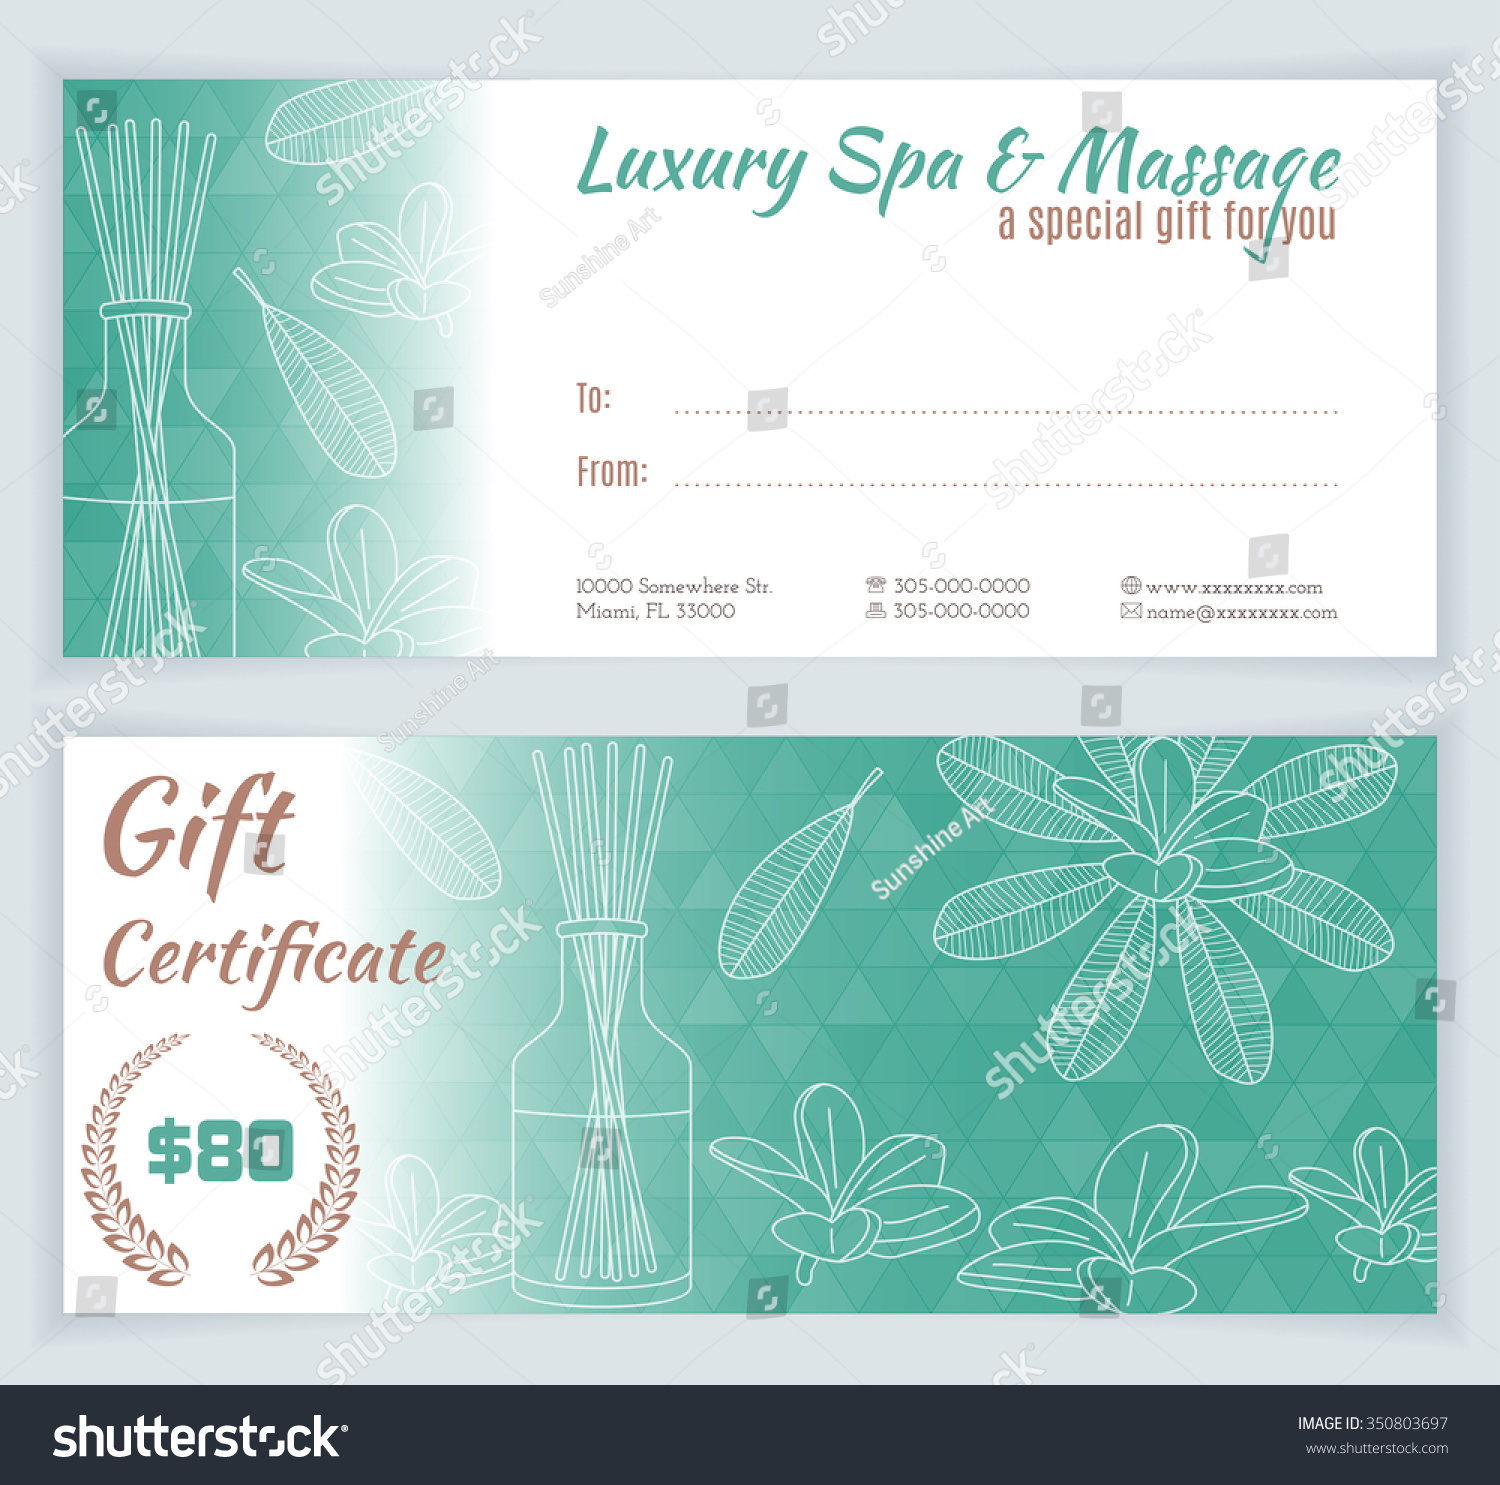 Royalty free spa massage gift certificate template 350803697 spa massage gift certificate template with hand drawn reed fragrance diffuser for invitation xflitez Images